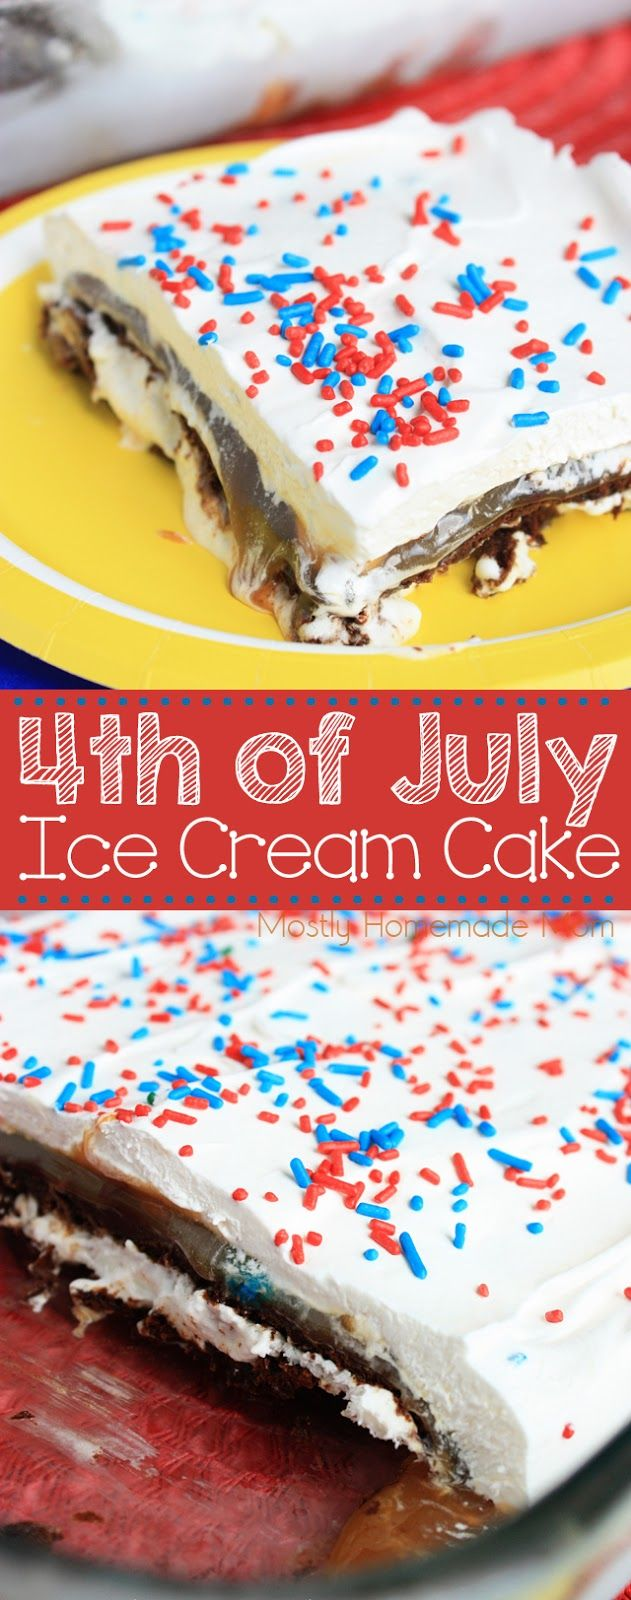 july 4th ice cream recipe